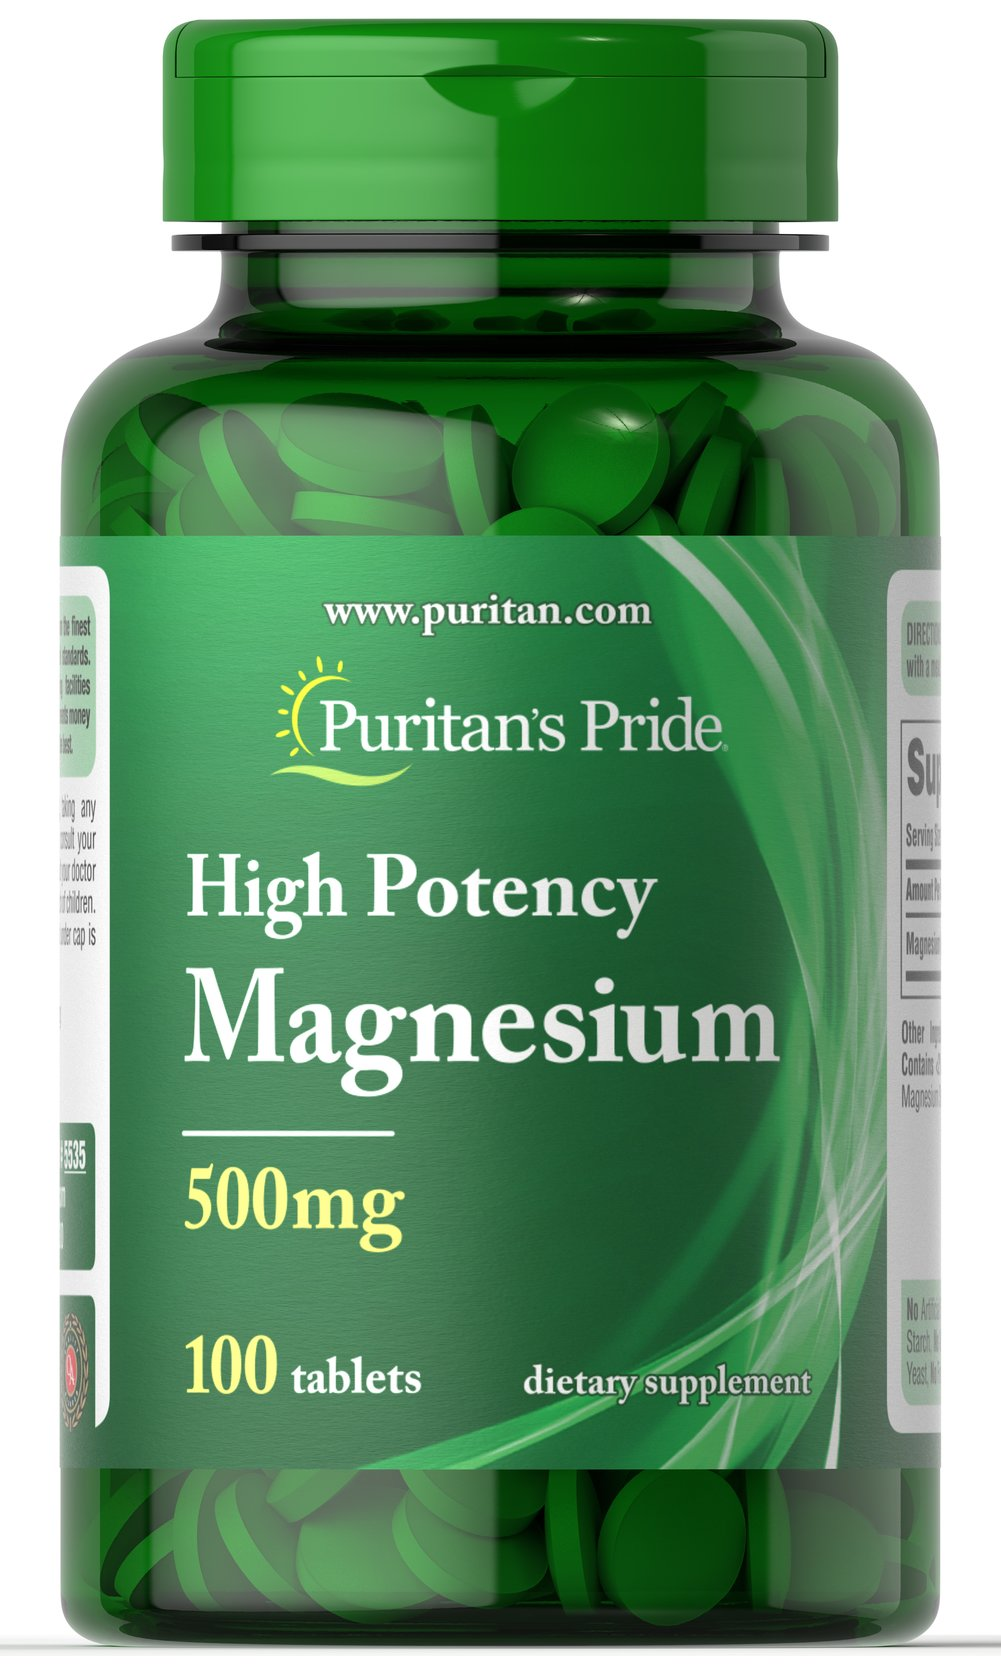 Magnesium 500 mg <p>Magnesium offers another option, besides Calcium, for supporting bone health.** Magnesium plays an essential role in maintaining bone mineralization, and is also involved in muscle contractions and nerve impulses.** Adults can take one caplet daily with a meal.</p> 100 Tablets 500 mg $12.99